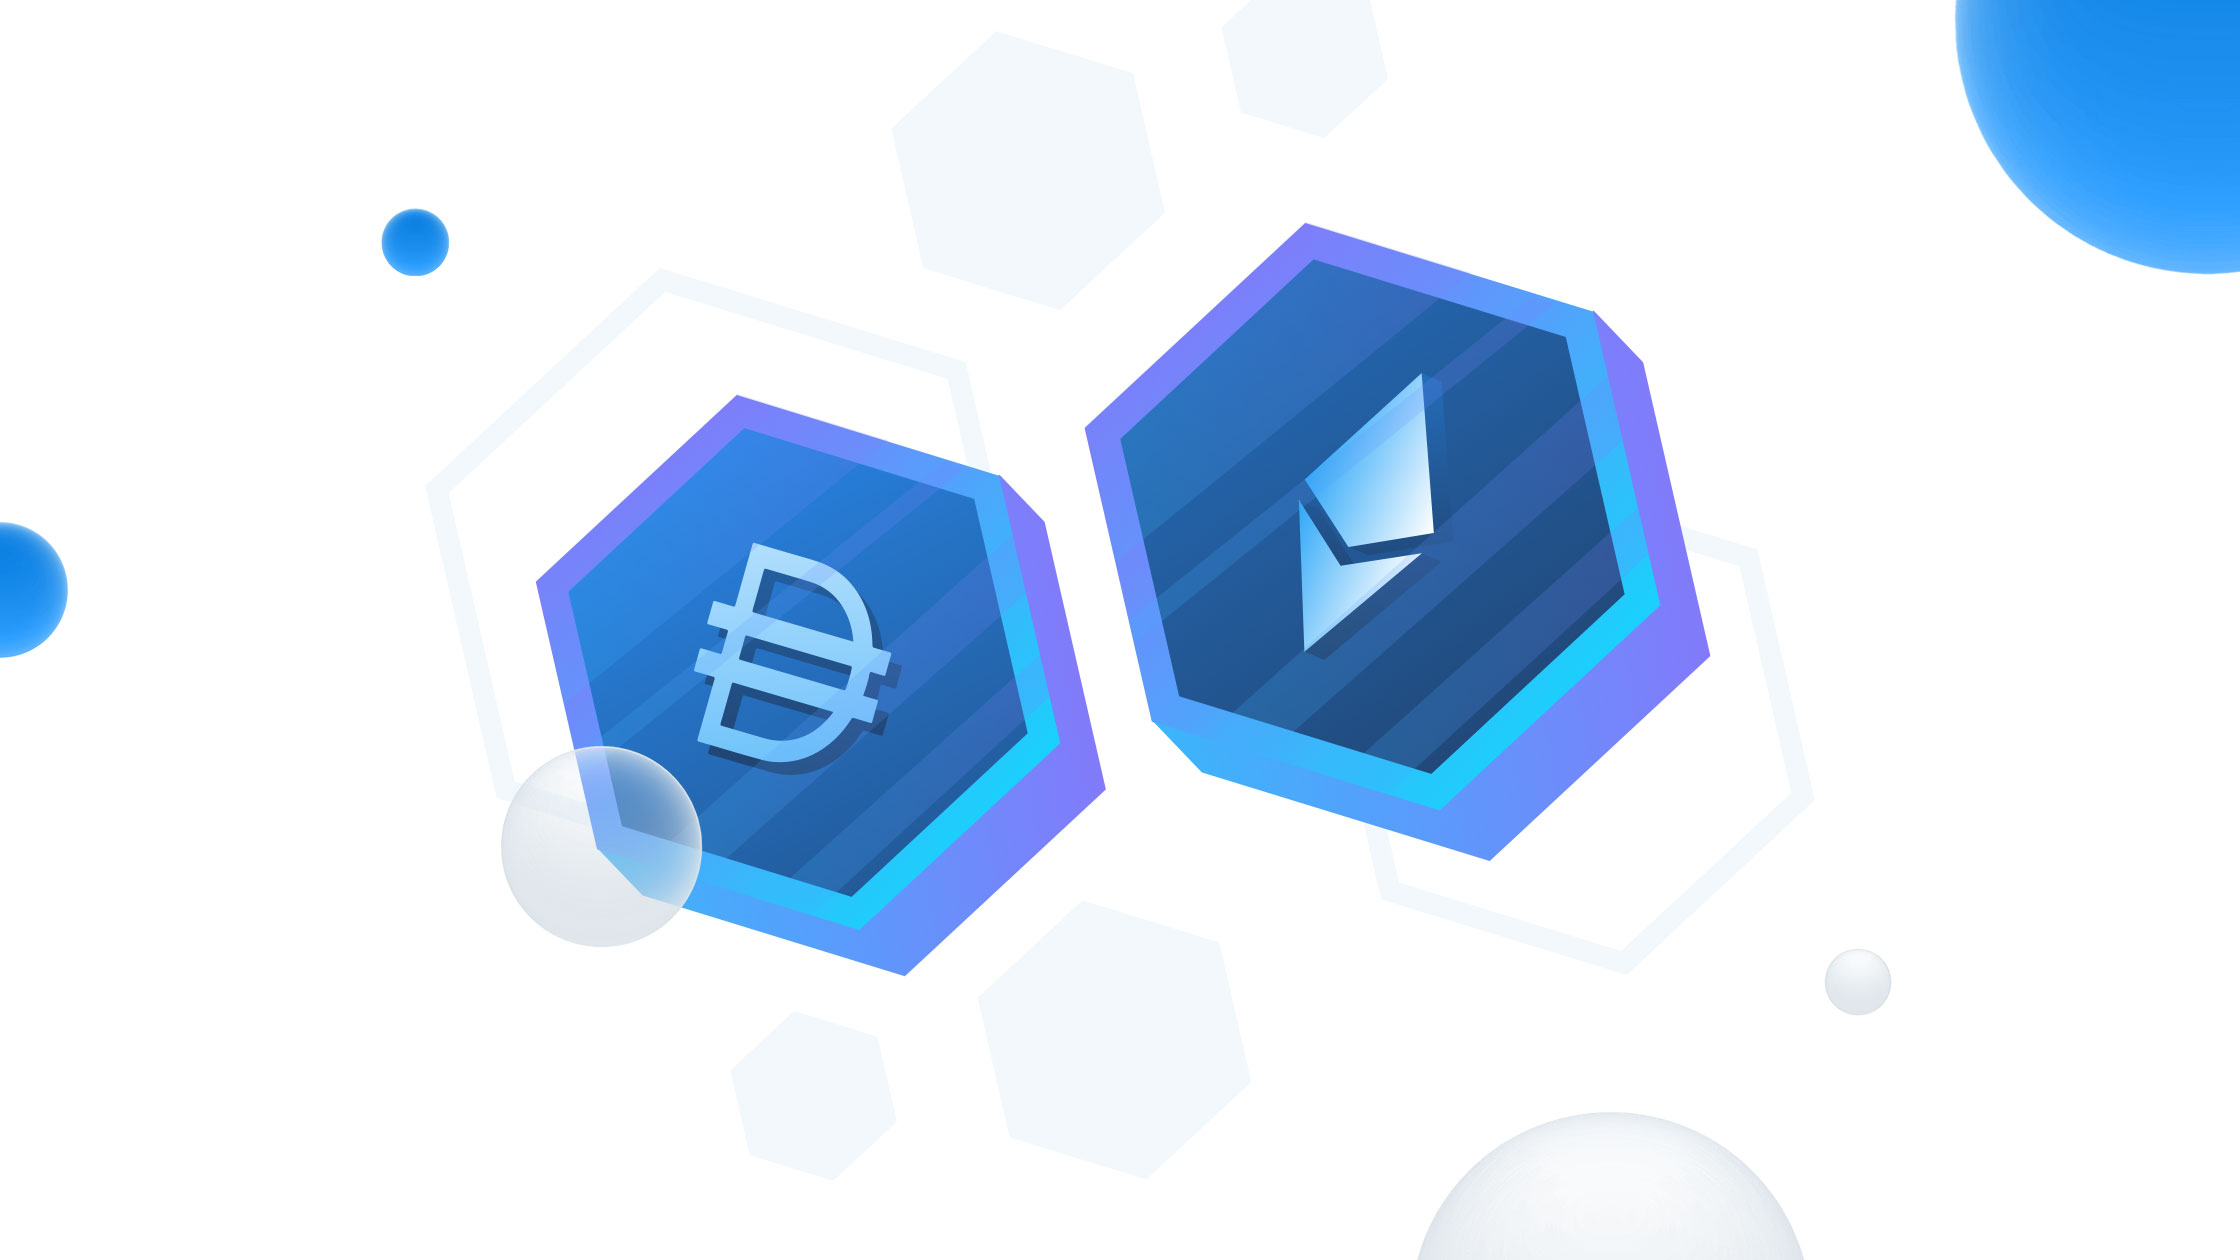 Dai Crypto: The Simple Guide to Ethereum and Dai